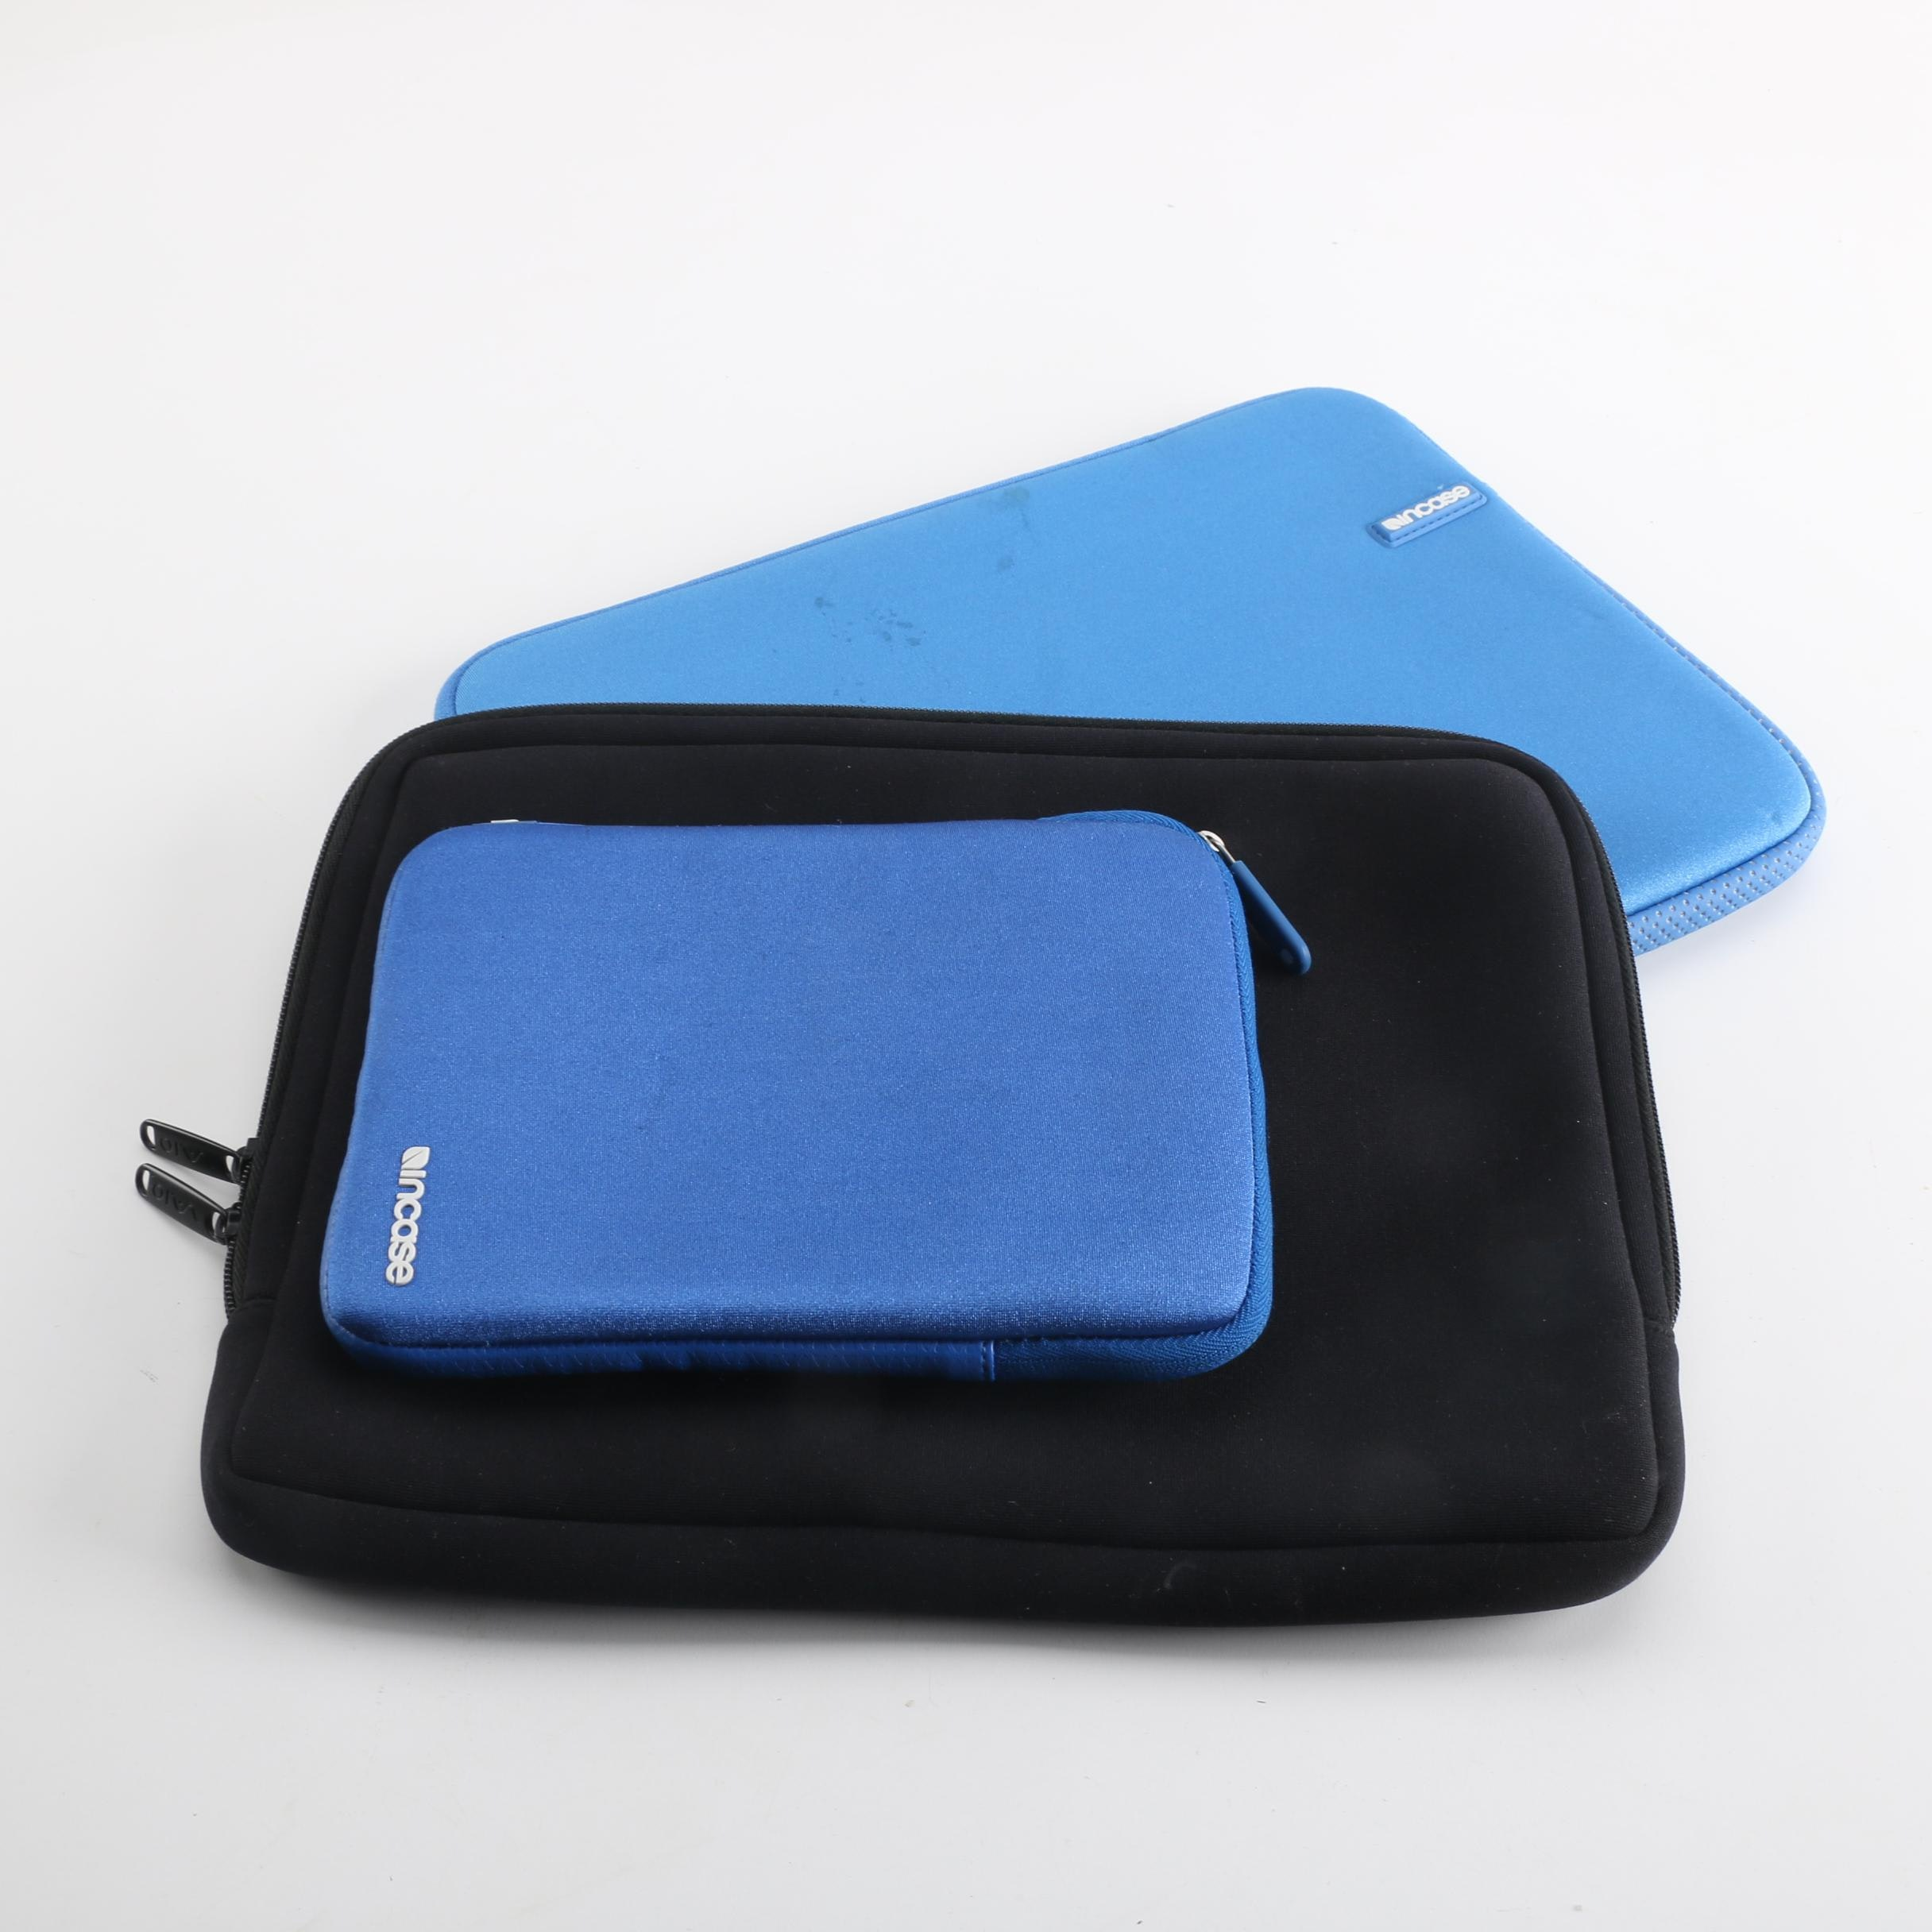 Three Laptop and Tablet Covers